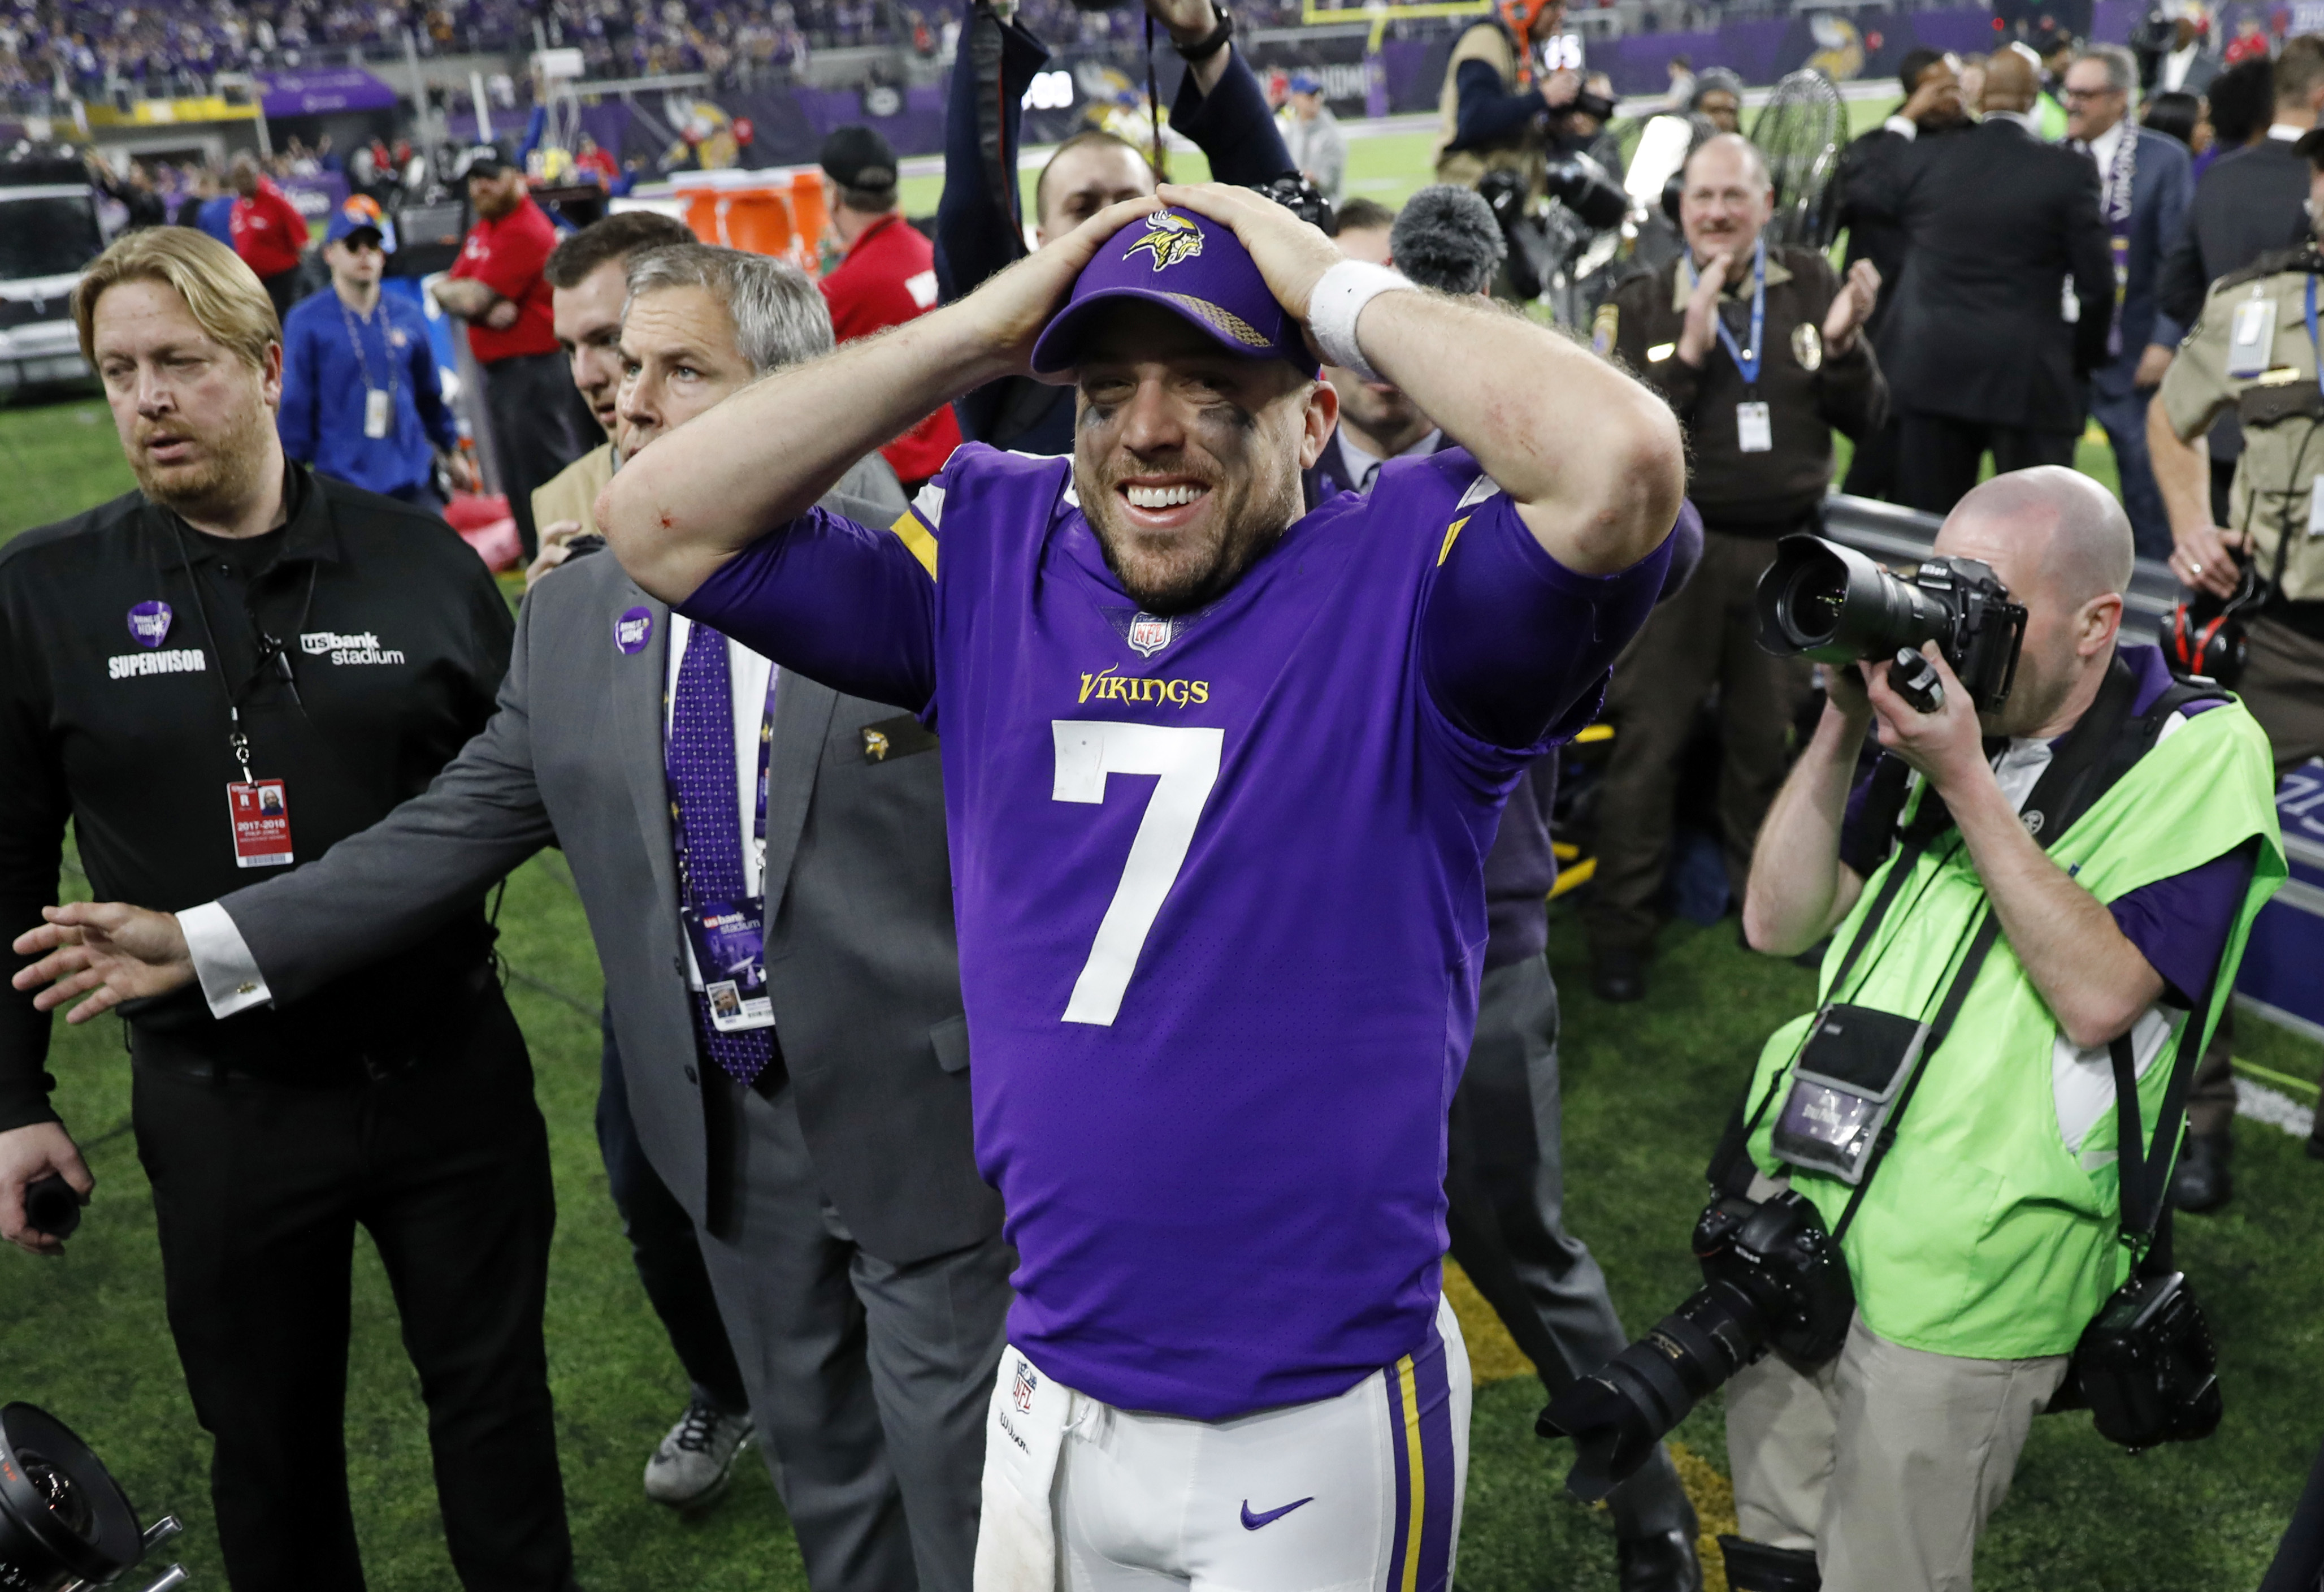 Vikings quarterback Case Keenum had a hard time believing how the win over the Saints last week ended.